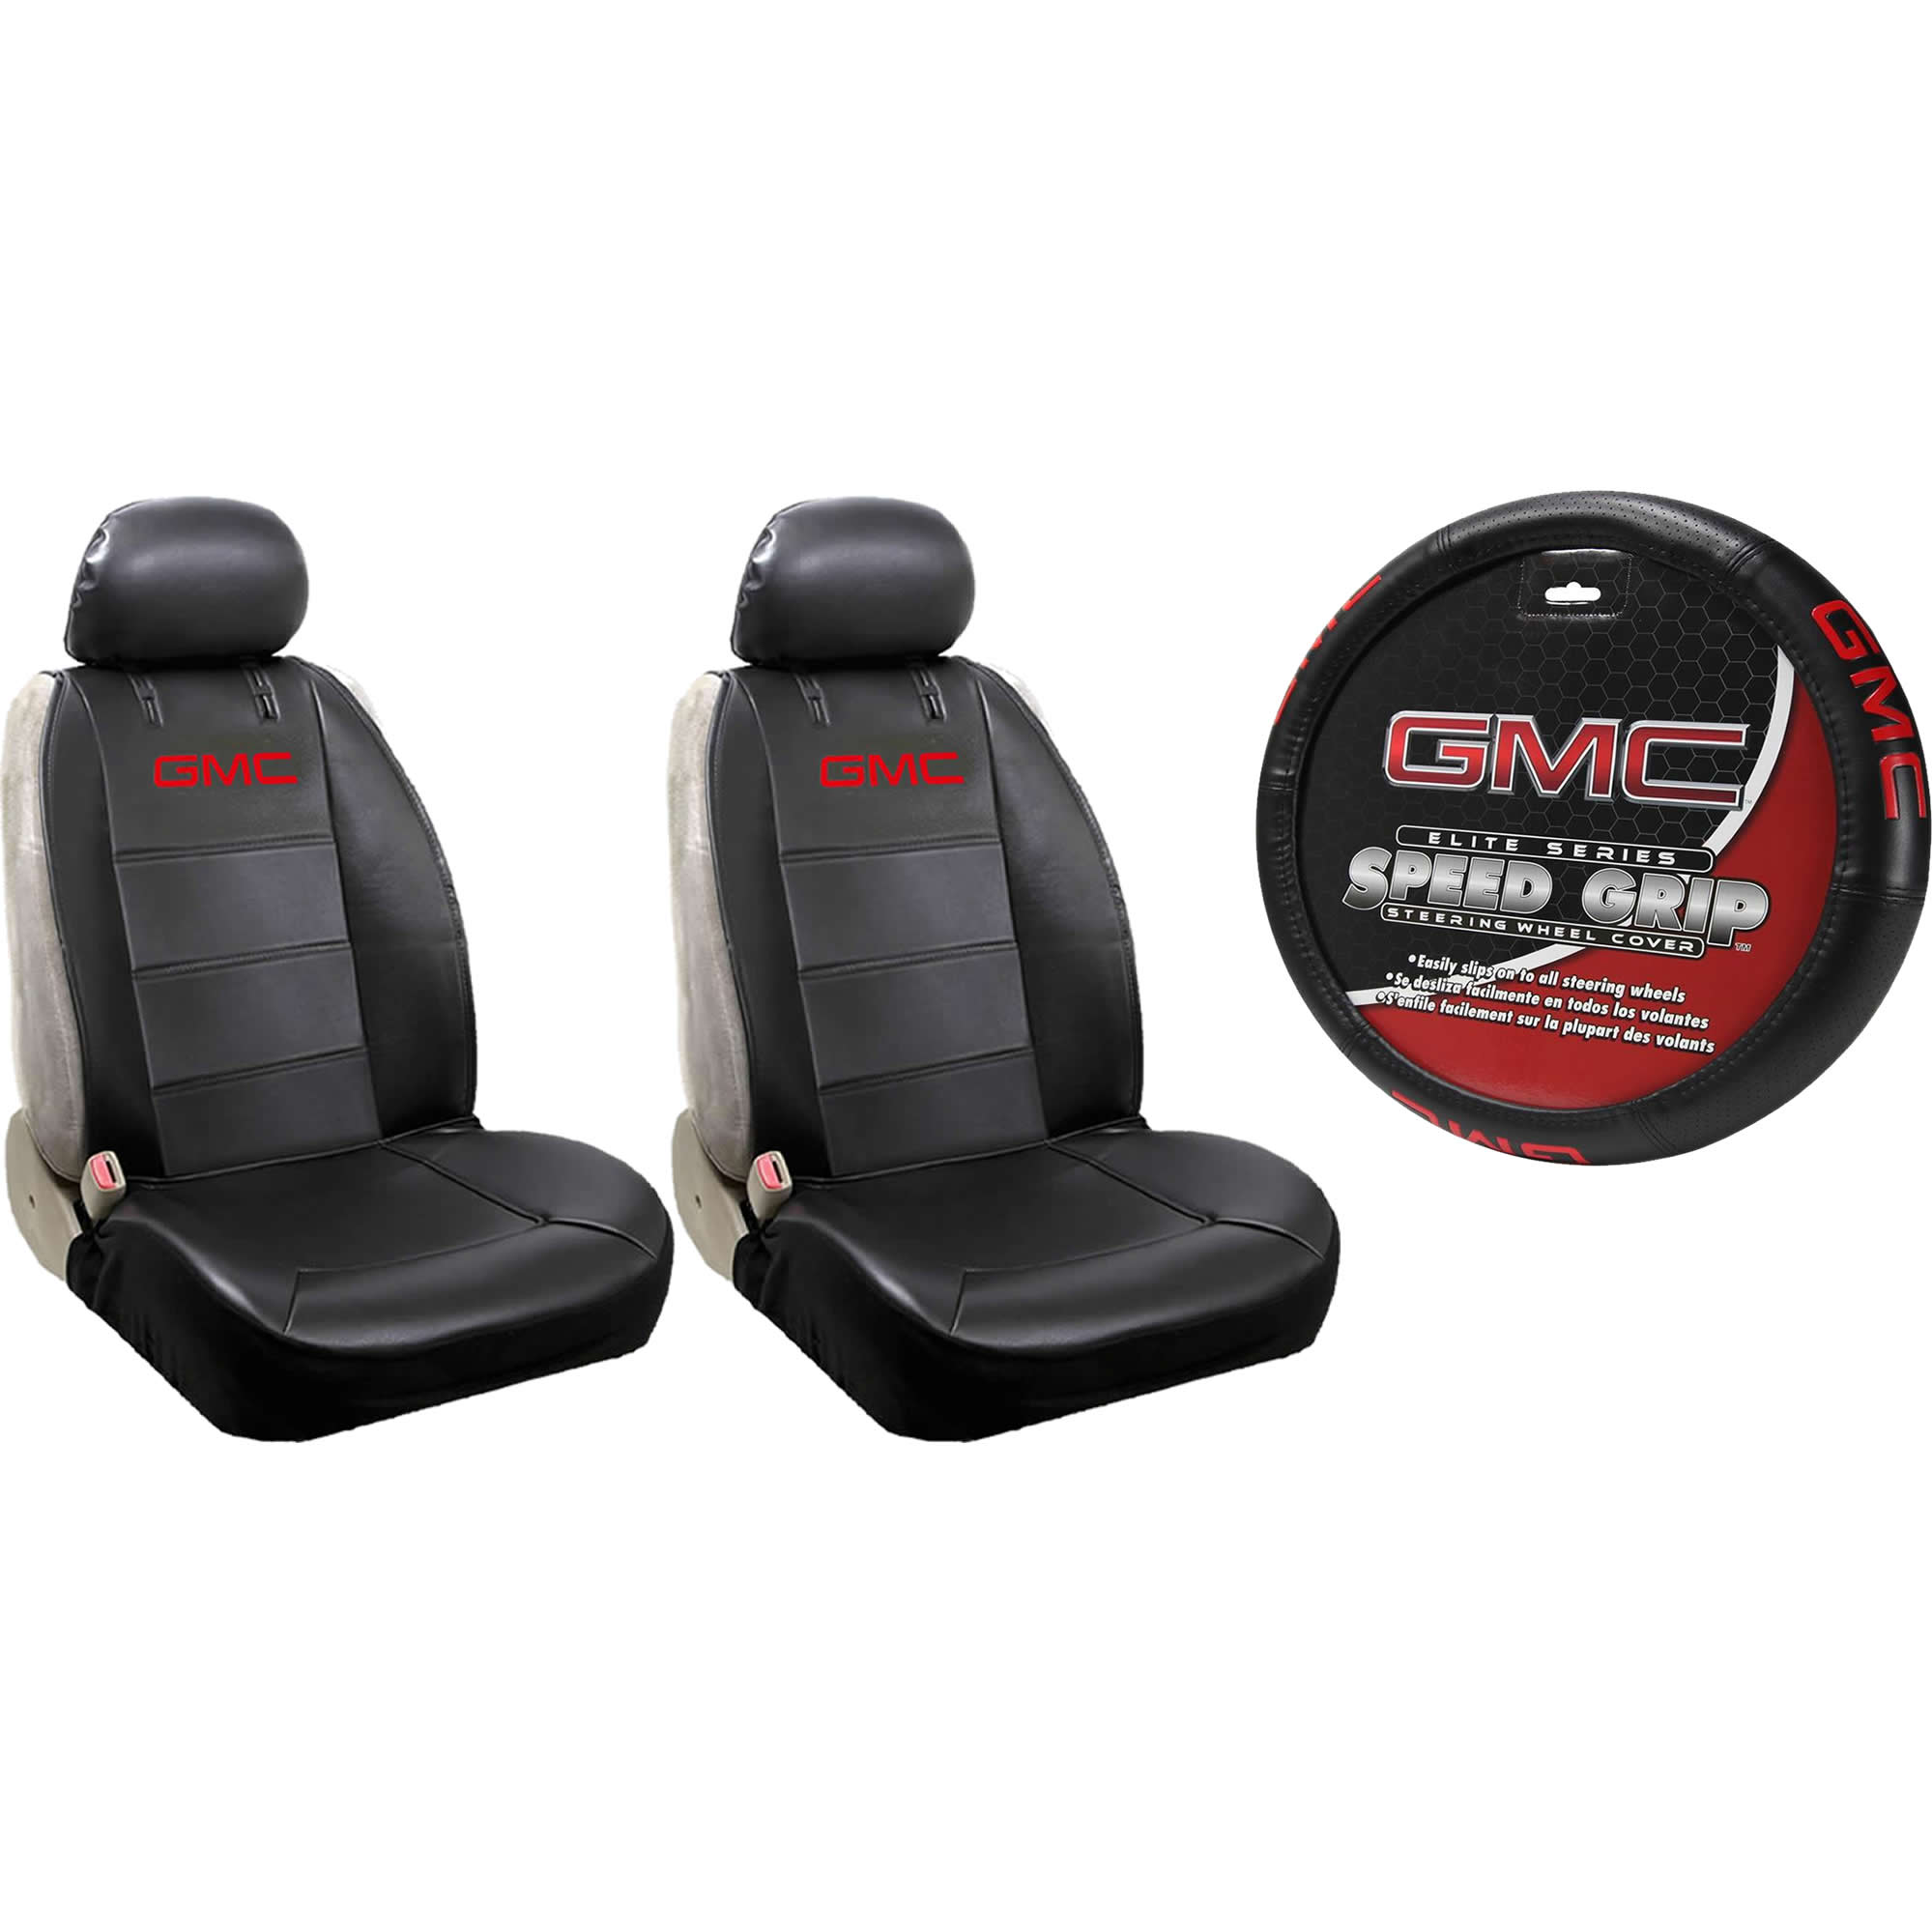 2 GMC Synthetic Leather Sideless Seat Covers & Steering Wheel Cover Set Car Truck SUV